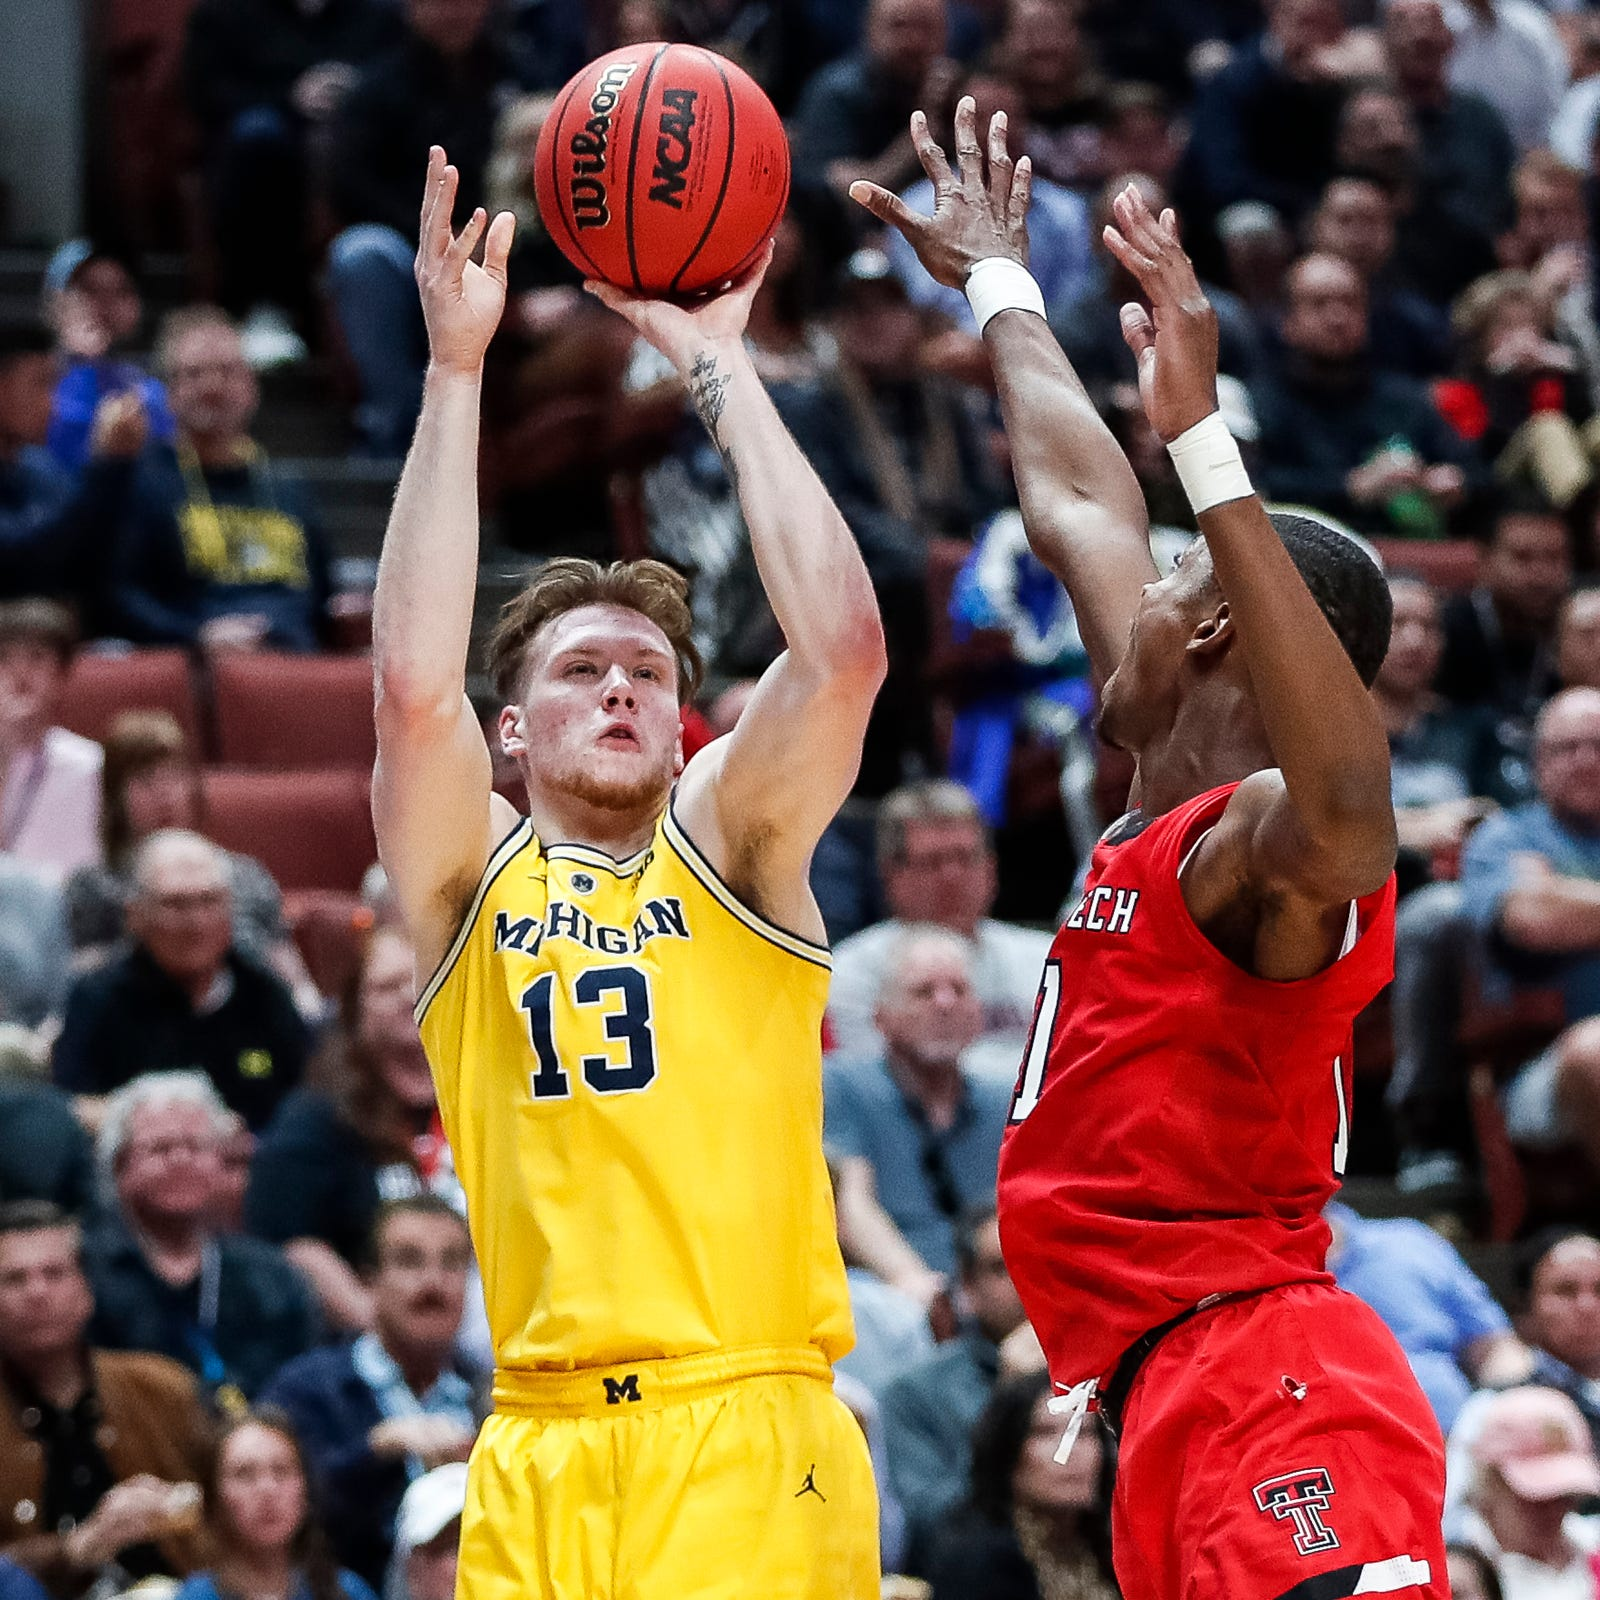 Michigan's Ignas Brazdeikis leaning toward NBA draft after Beilein exit